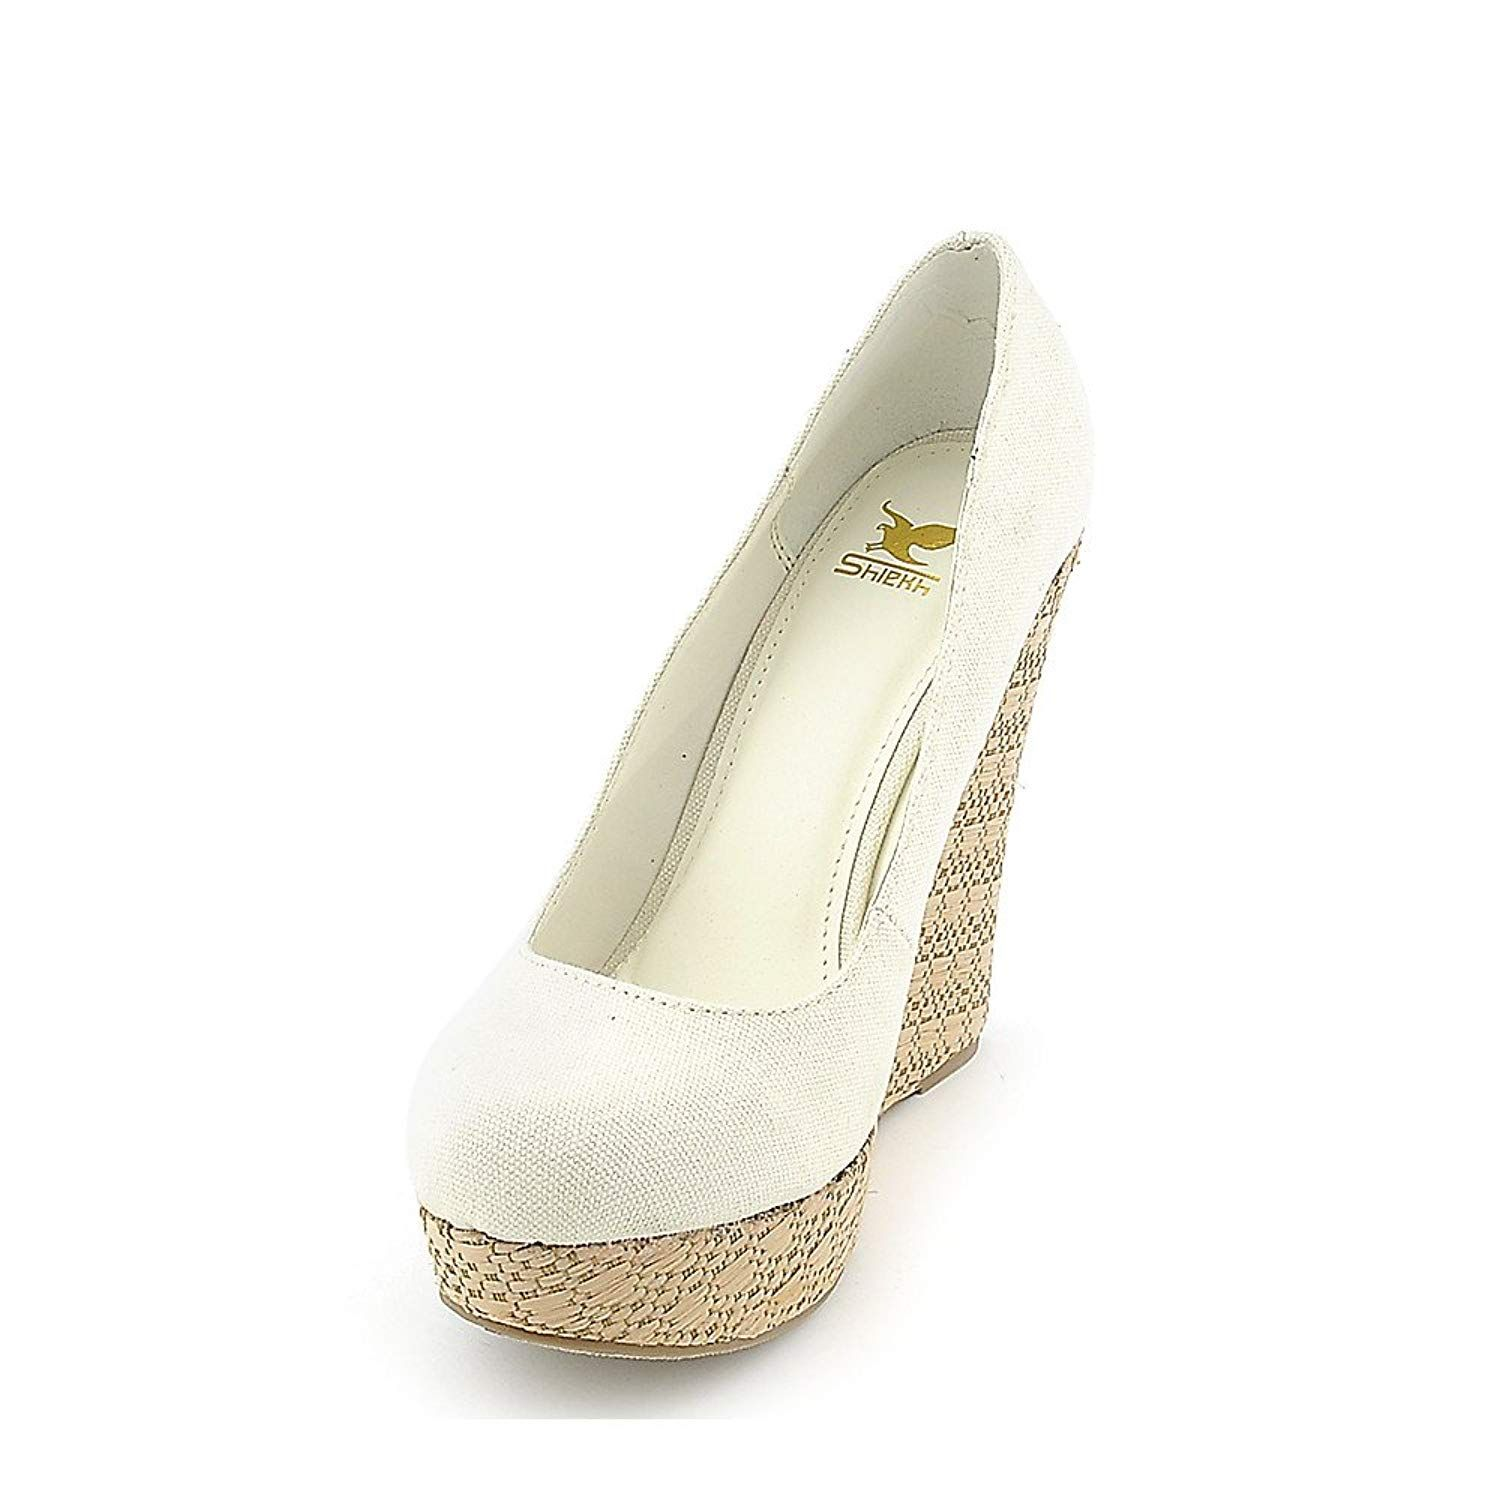 7f29caf8559e Delicious Womens Glow-S Casual Wedge. Taupevegan suede espadrille wedges  from the Shiekh Shoes